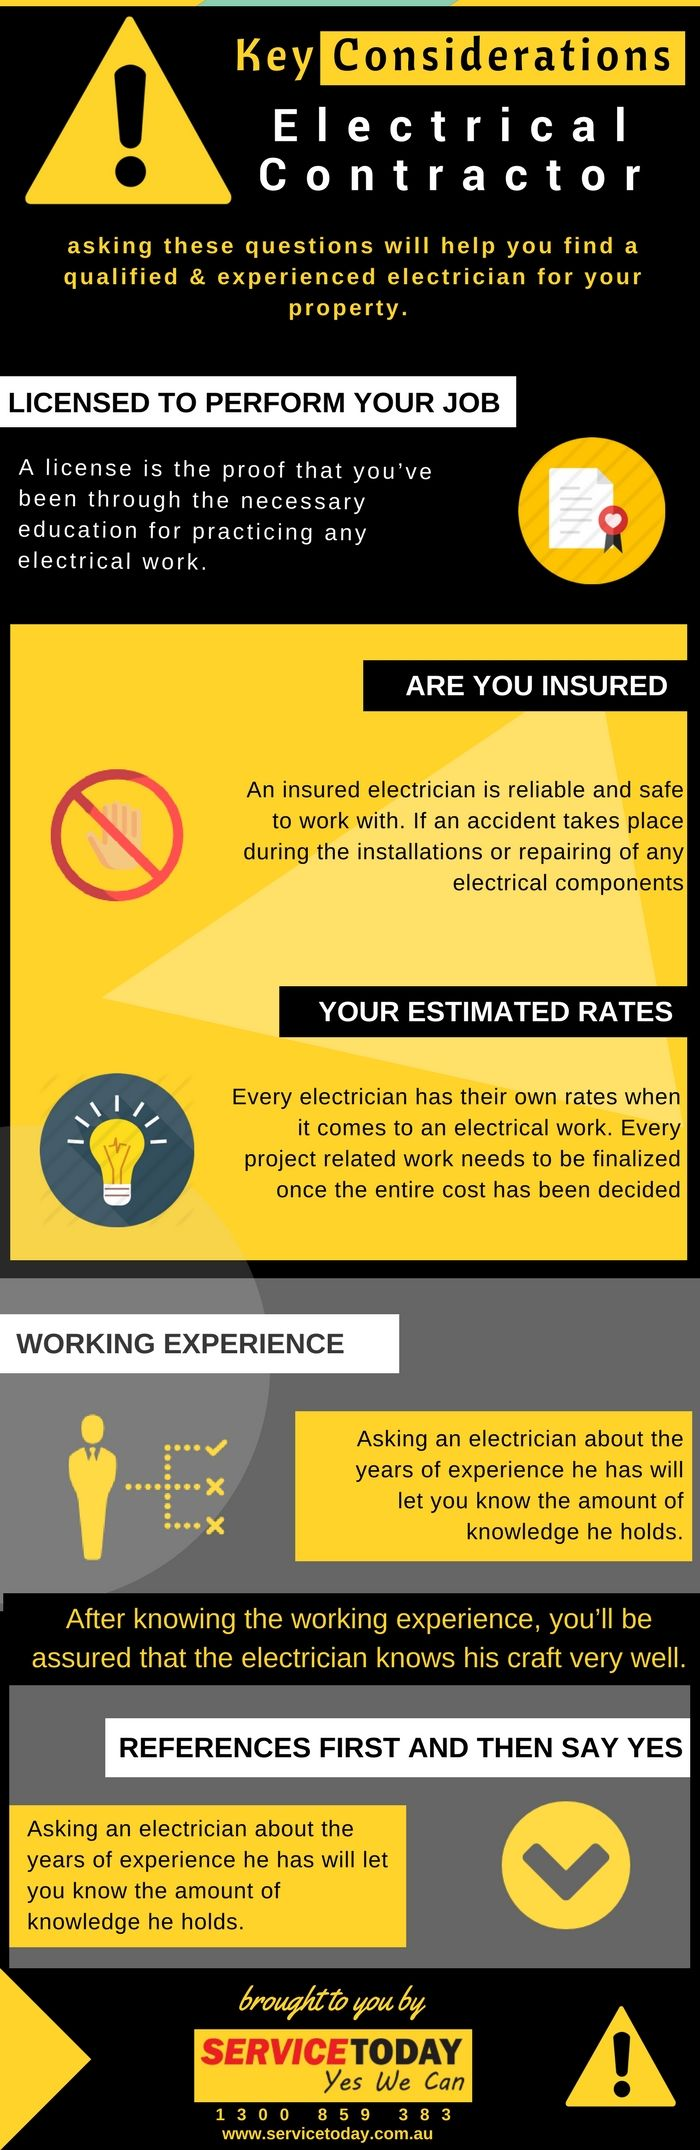 Important 5 Questions to Ask an Electrician before Hiring #electrician #Melbourne #Contractor #electrical #lighting